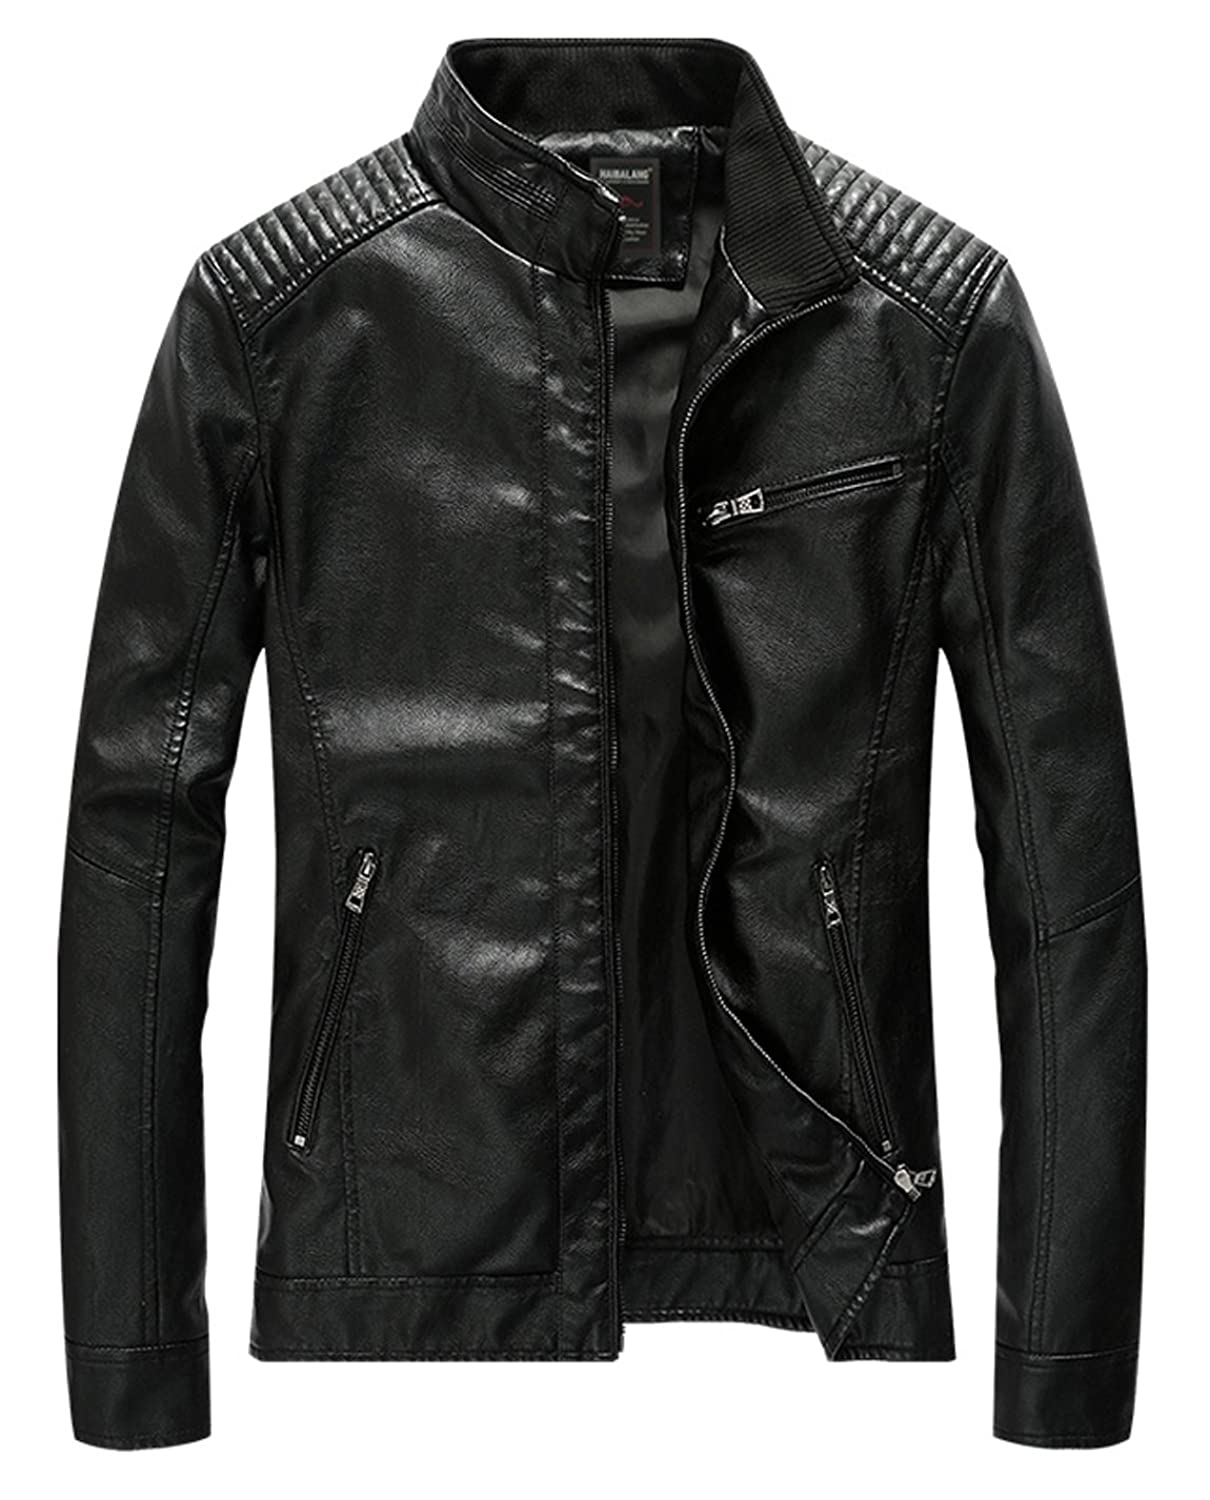 HOWON Men's Vintage Casual Stand Collar PU Leather Jacket